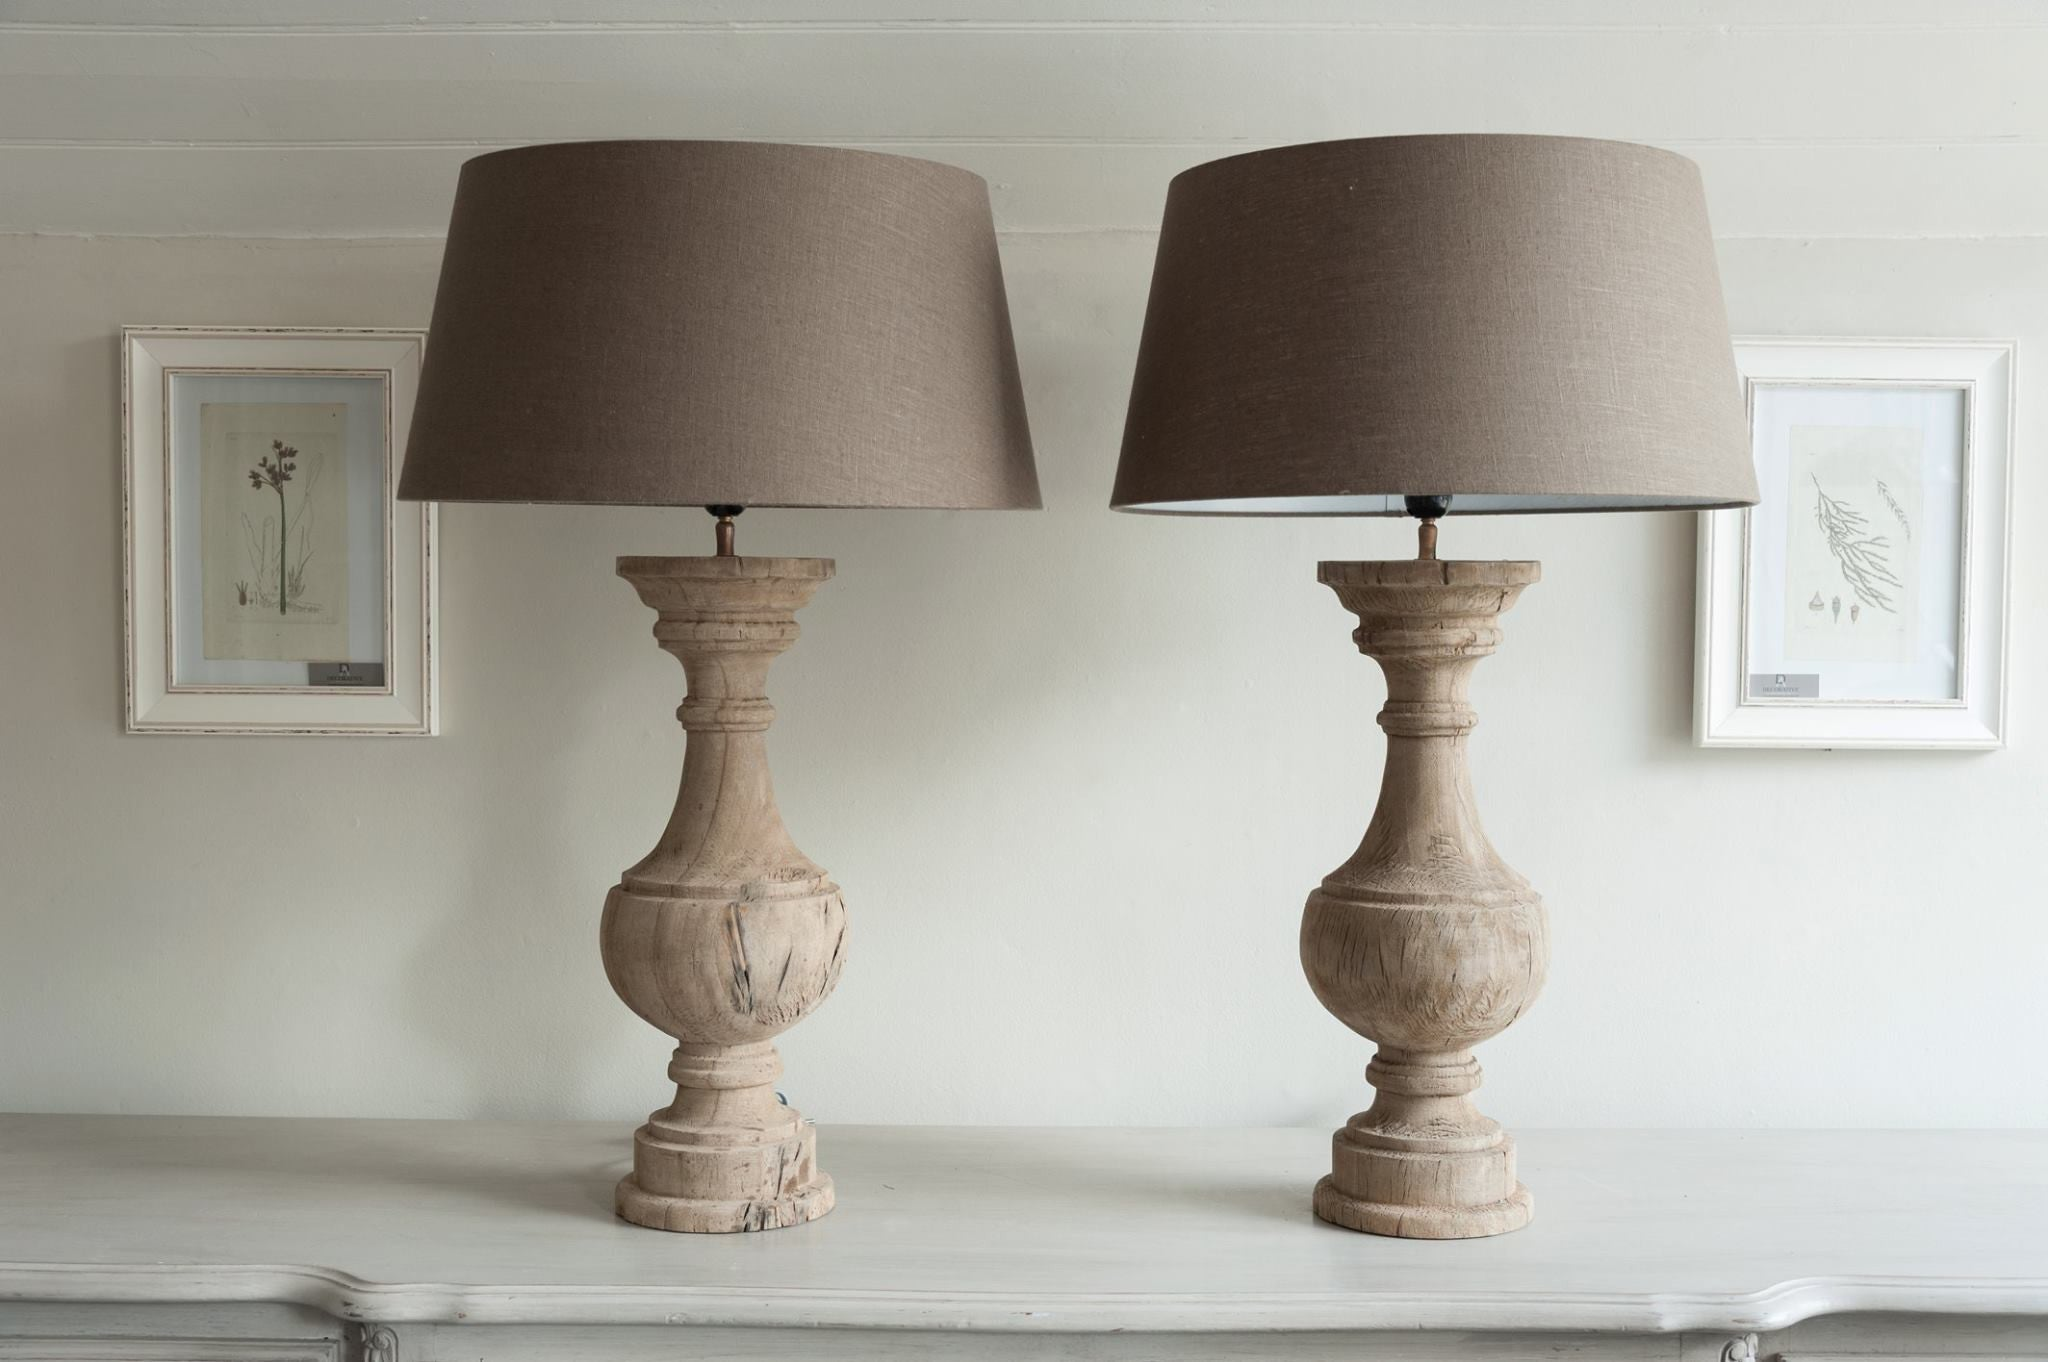 Antique wooden table lamps -  Stunning Pair Carved Wood Table Lamps With Linen Shades Decorative Antiques Uk 2